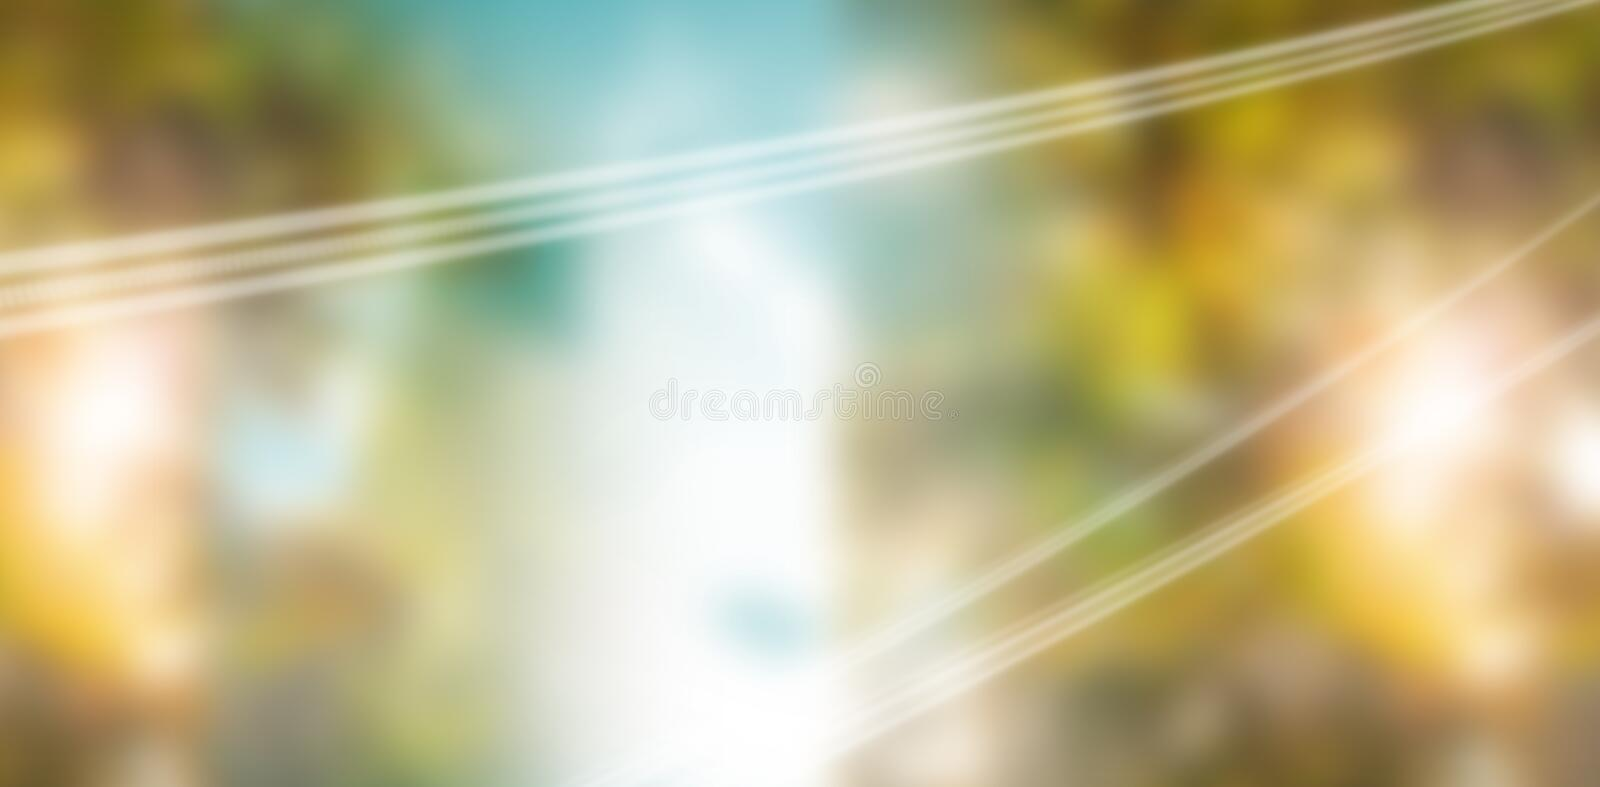 Composite image of coloured background with shiny lines stock photo